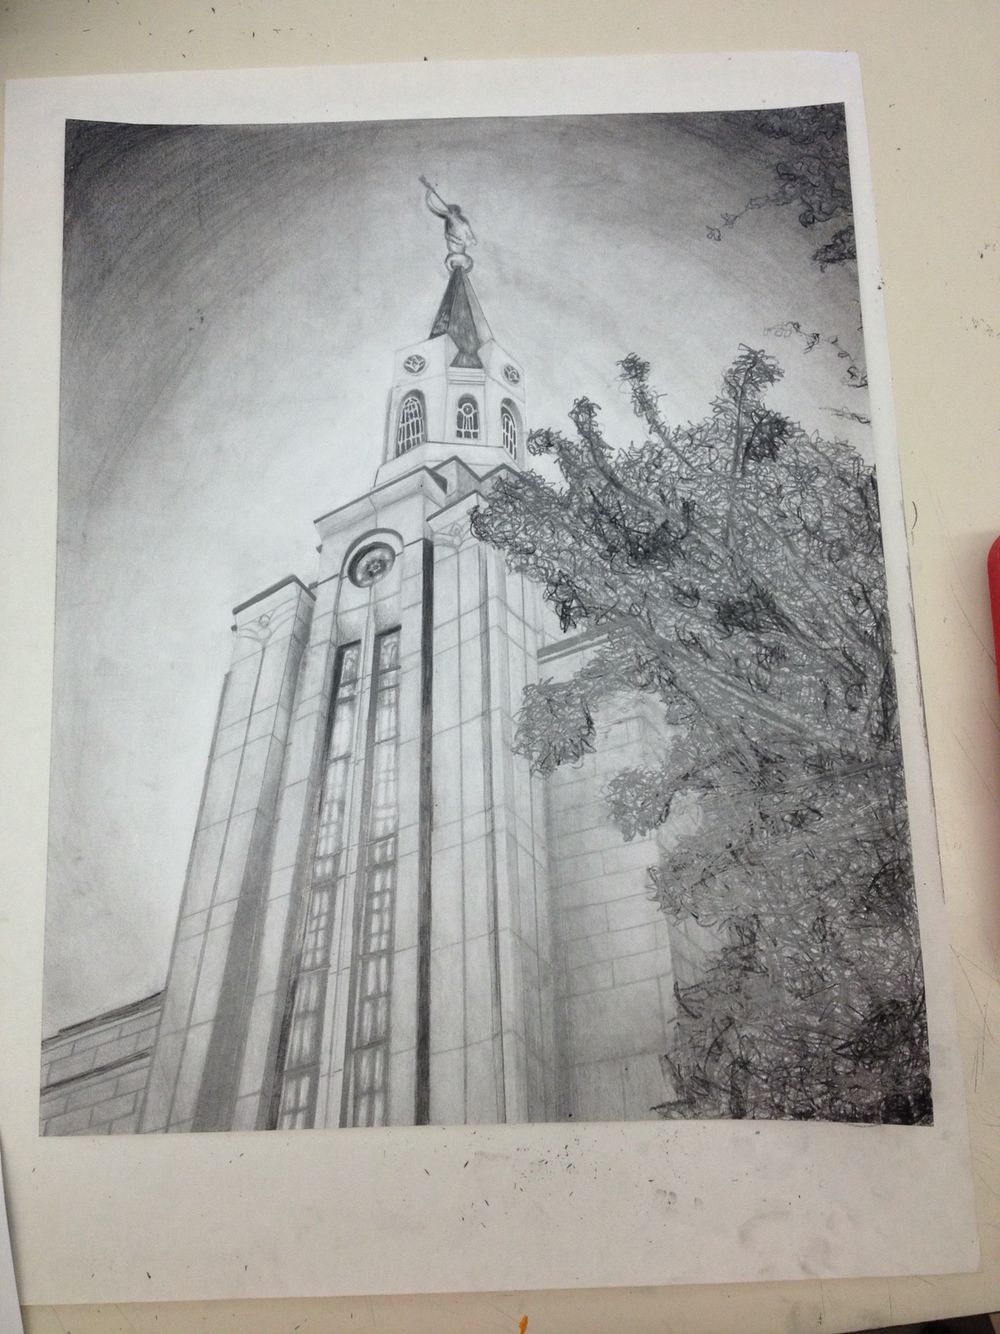 1000x1334 The Boston Lds Temple Pencil Drawing!